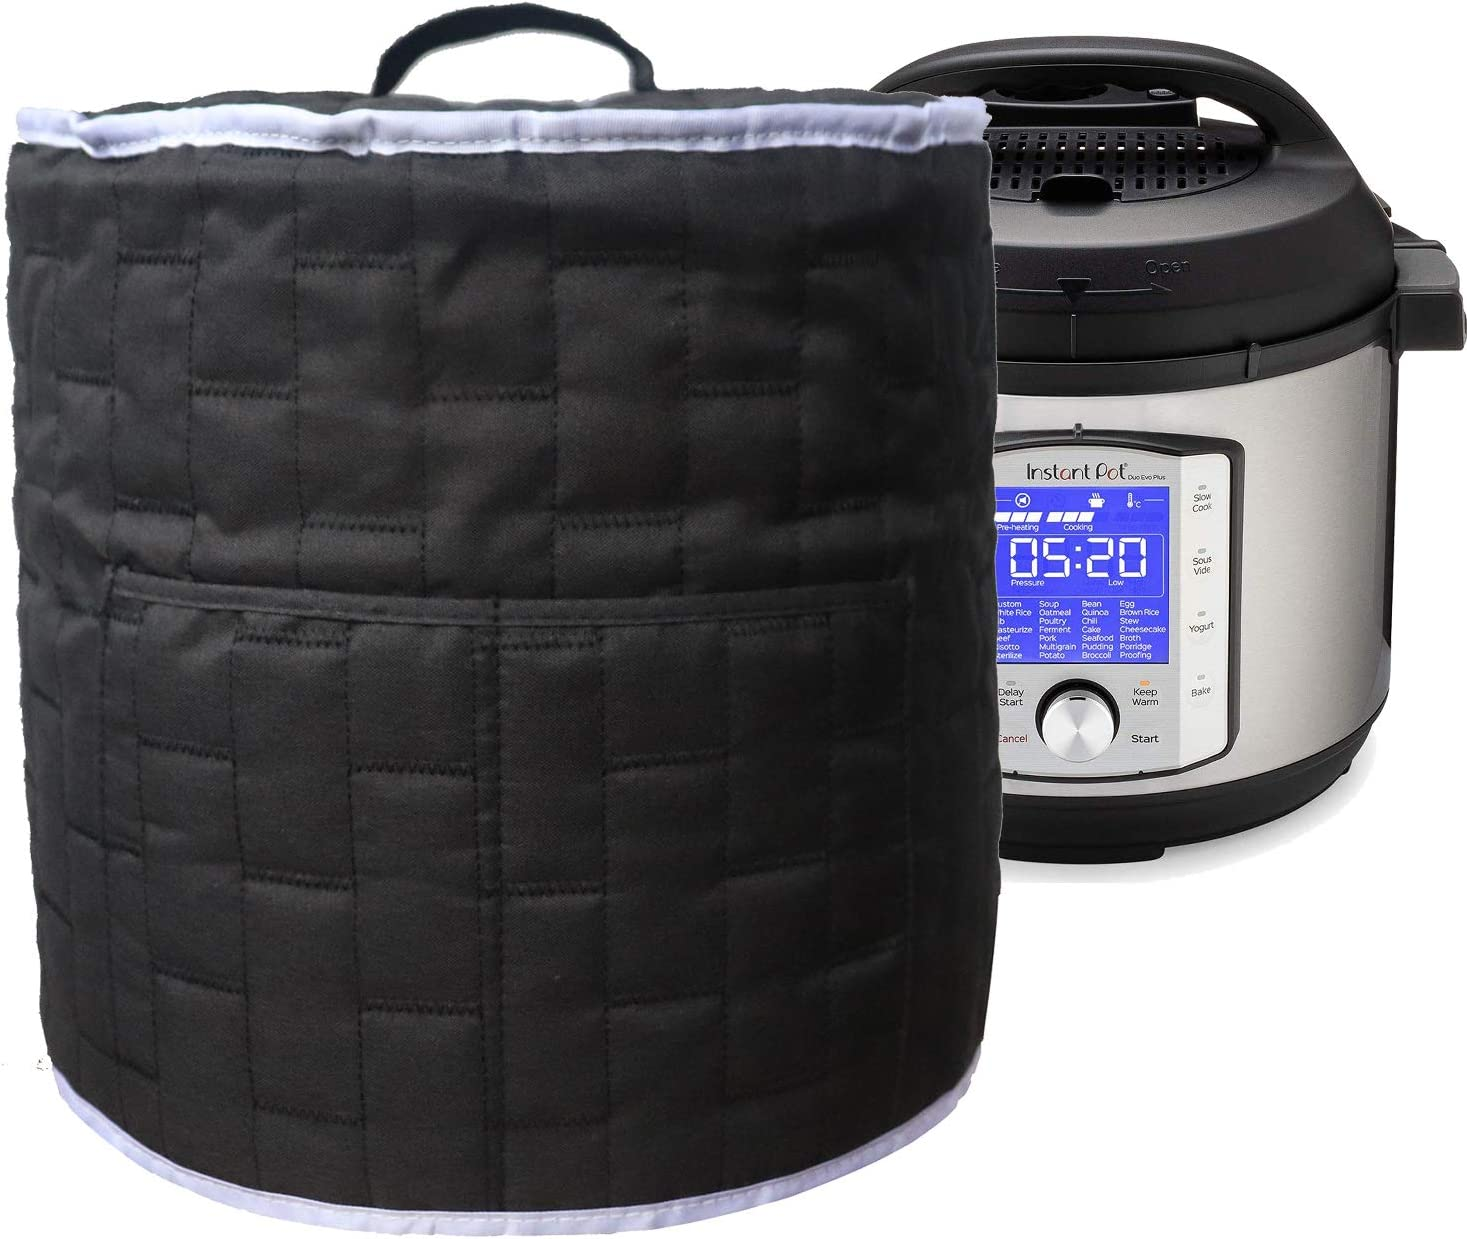 Pressure Cooker Dust Cover with Pocket, (For 6 Quart Instant Pot, Black)